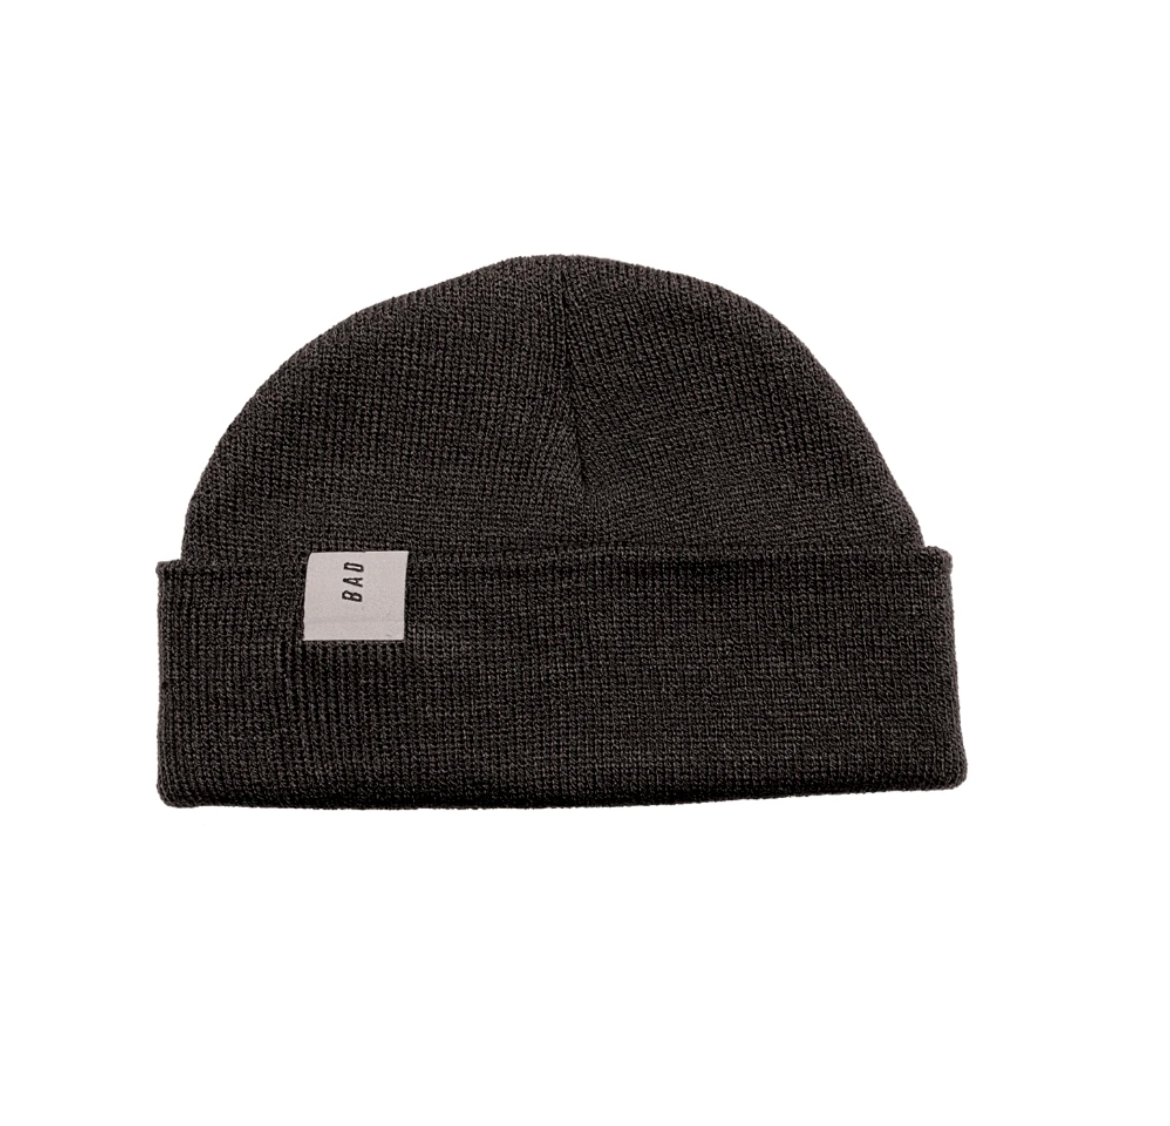 Low Profile Beanie - Black